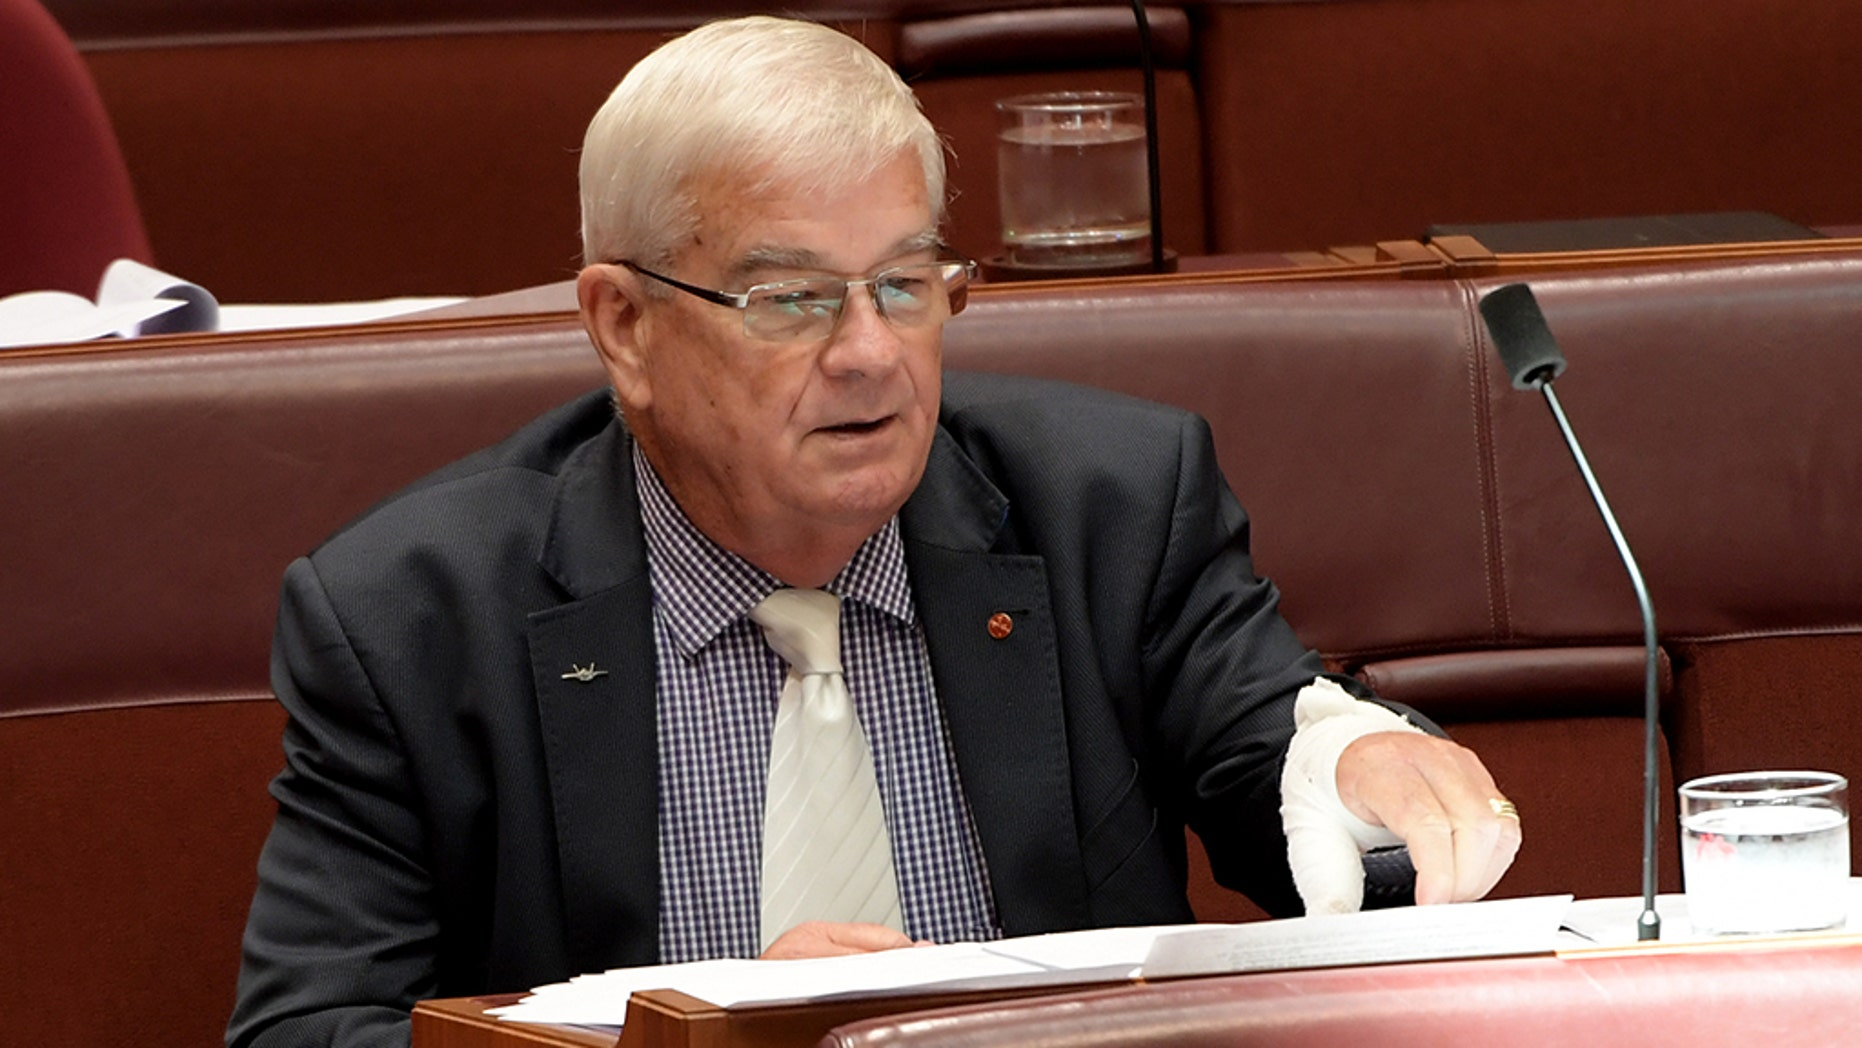 Senator Brian Burston, pictured with a bandage on his hand, admitted that he had smeared his blood on the door of One Nation leader Pauline Hanson's door after a scuffle with her aide in the parliament halls.